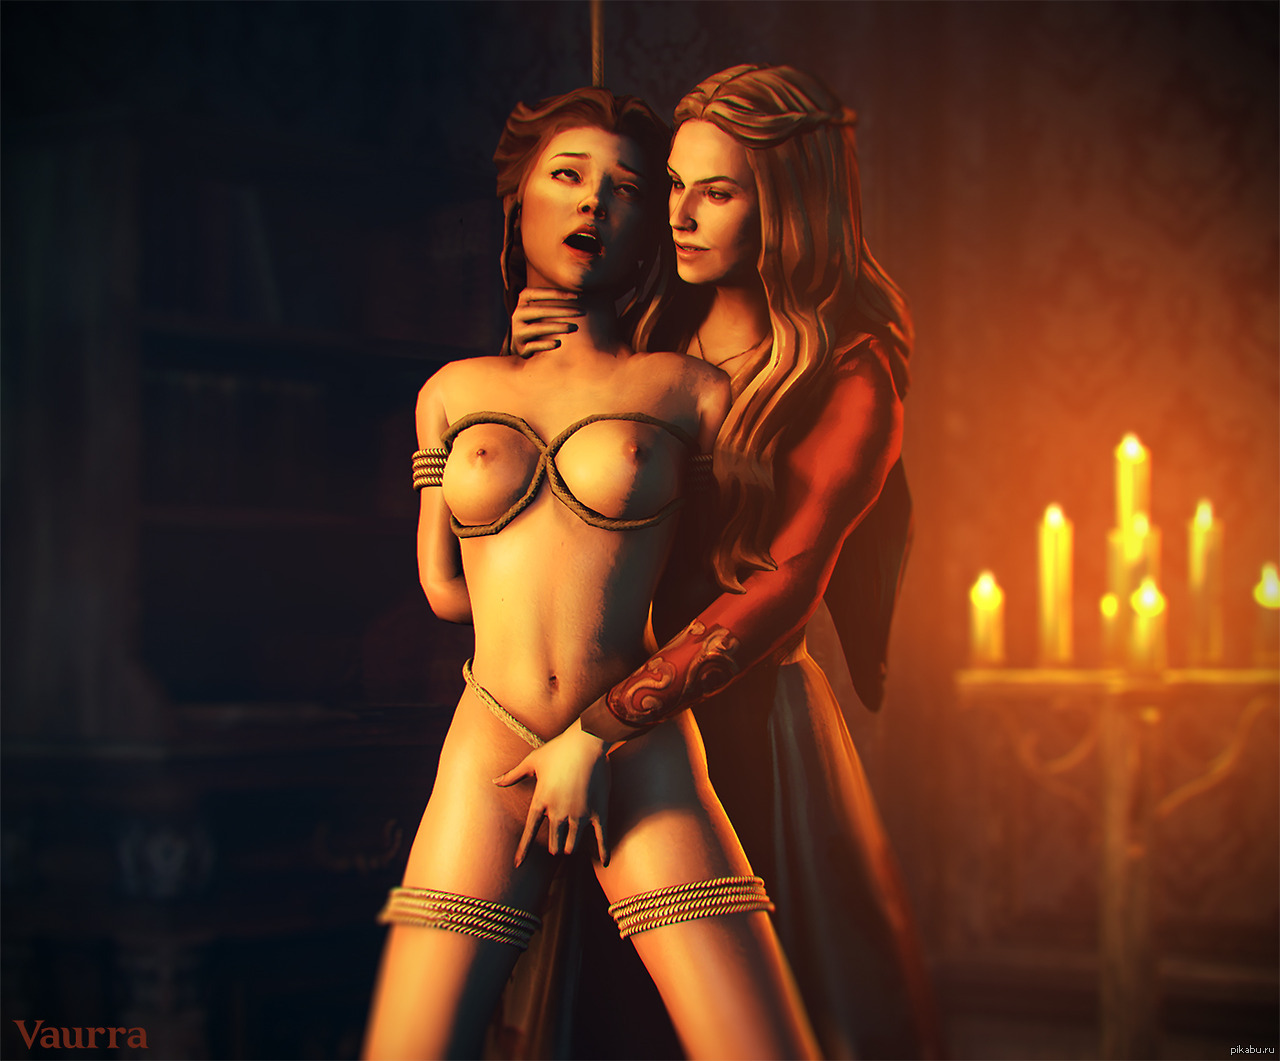 Game of thrones rule 34 hentai porncraft lesbian pussy